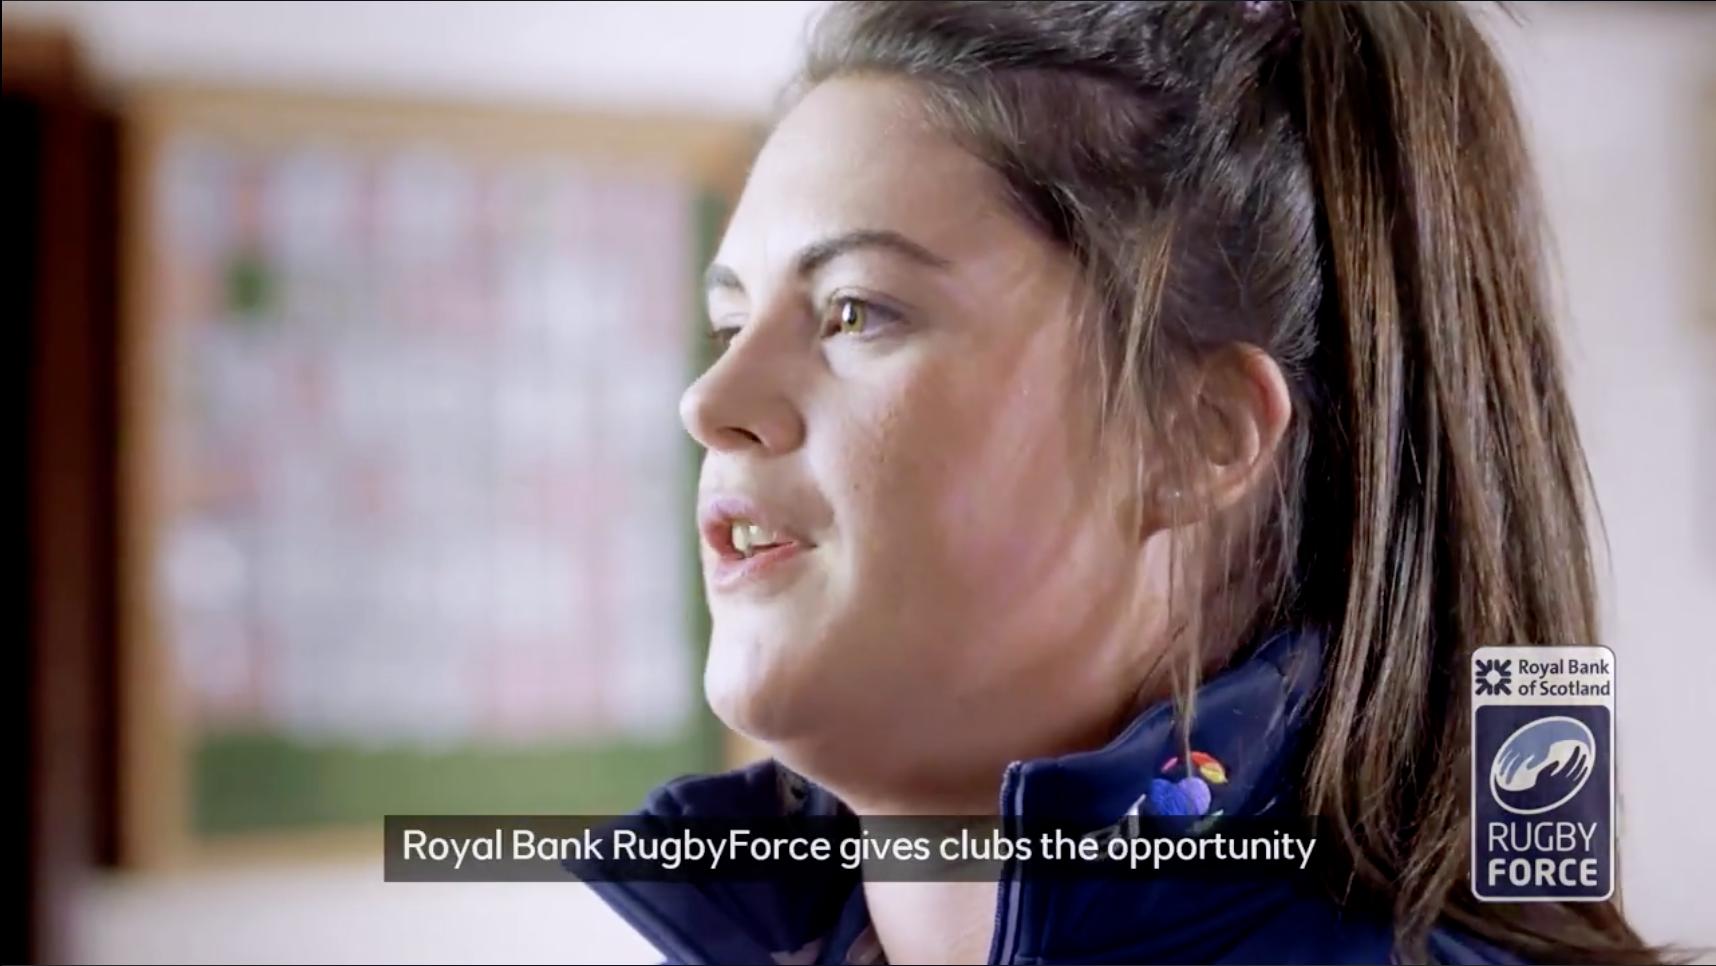 Royal Bank Rugby Force